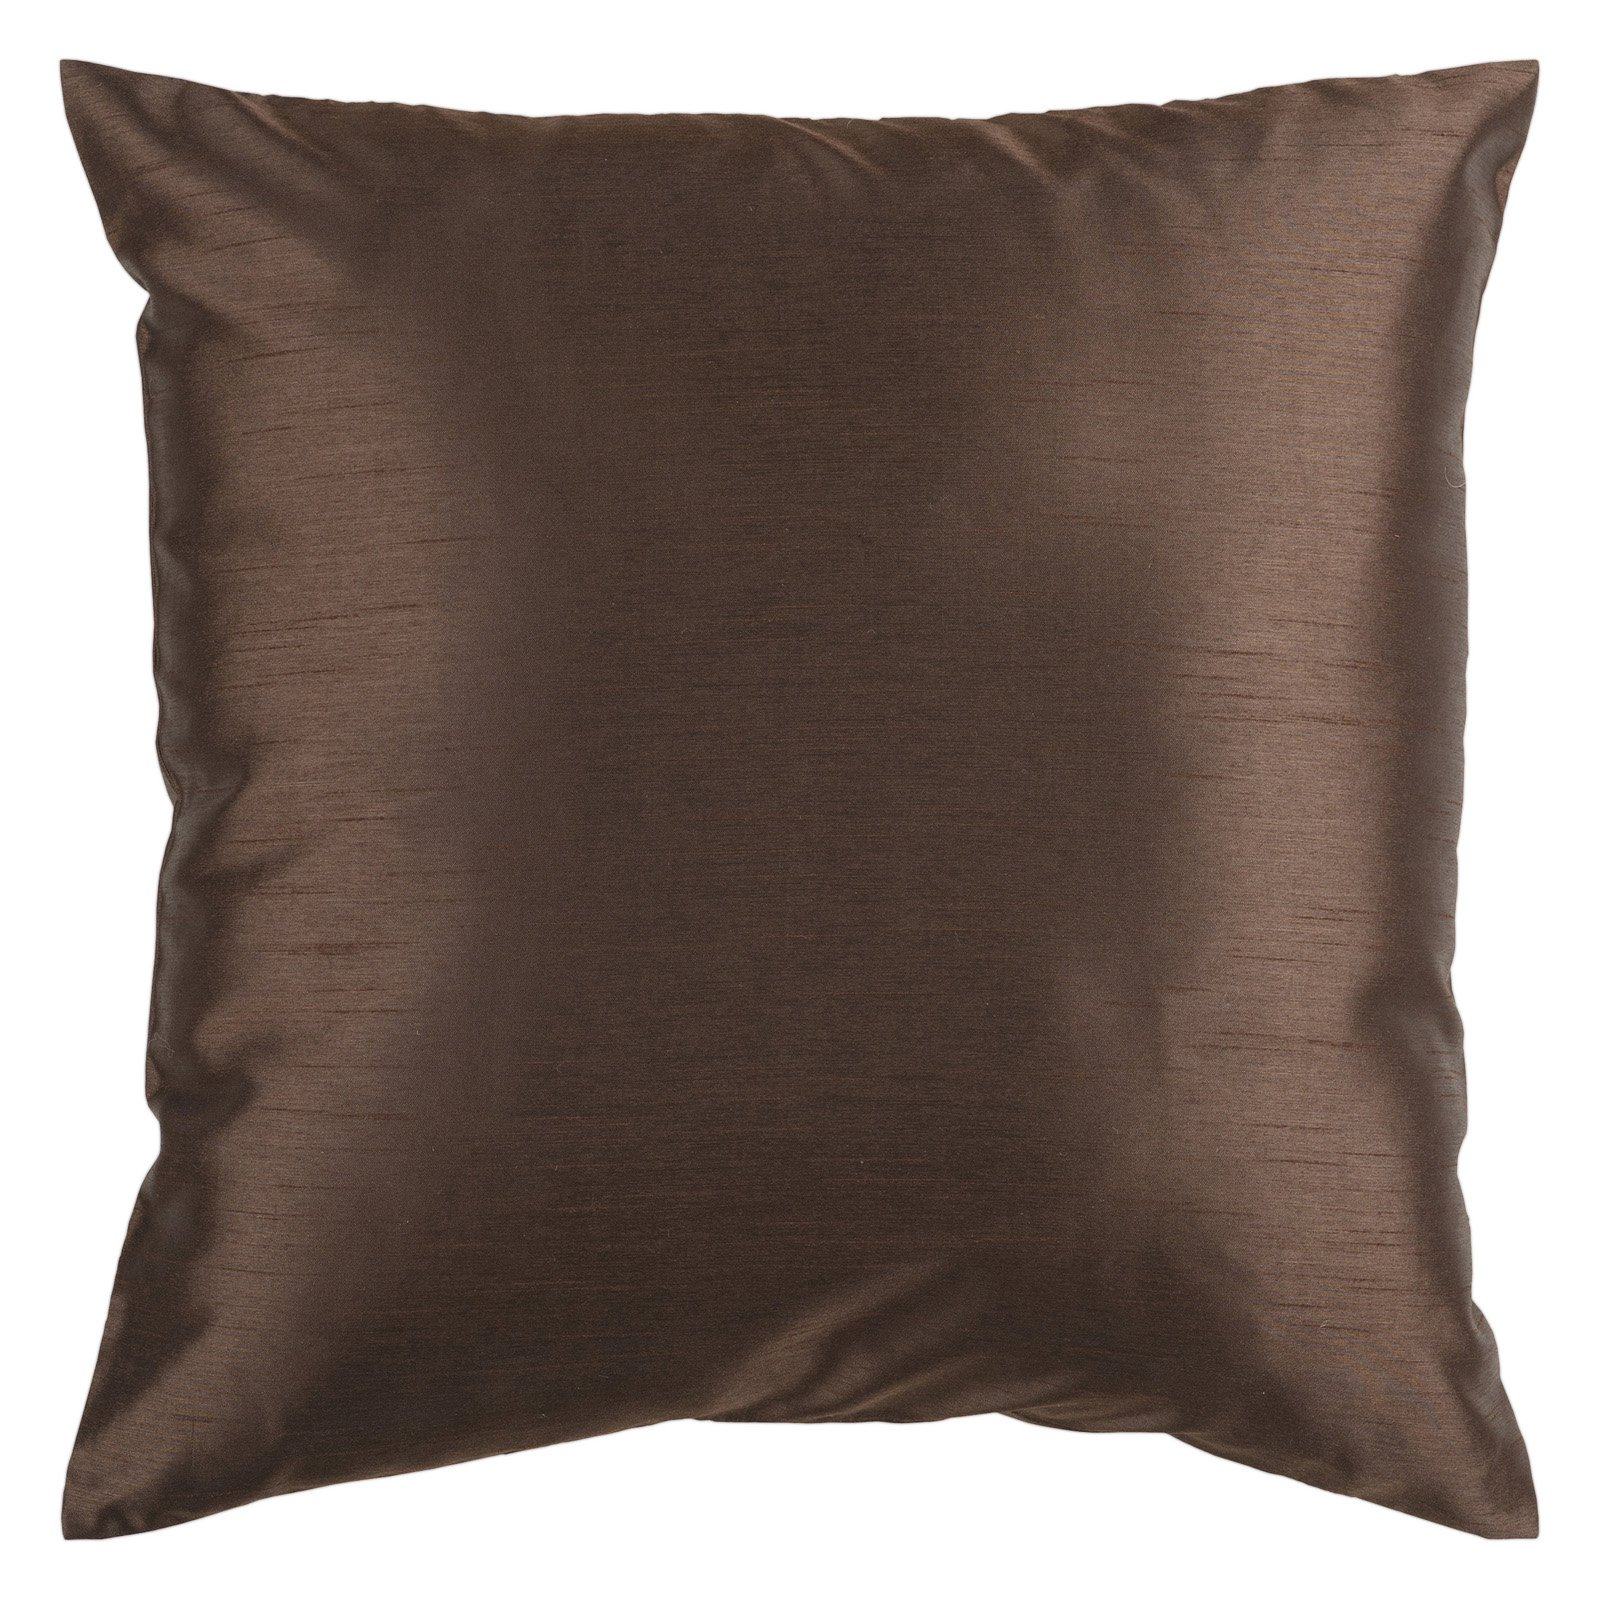 Surya Silk Lane Decorative Pillow - Brown